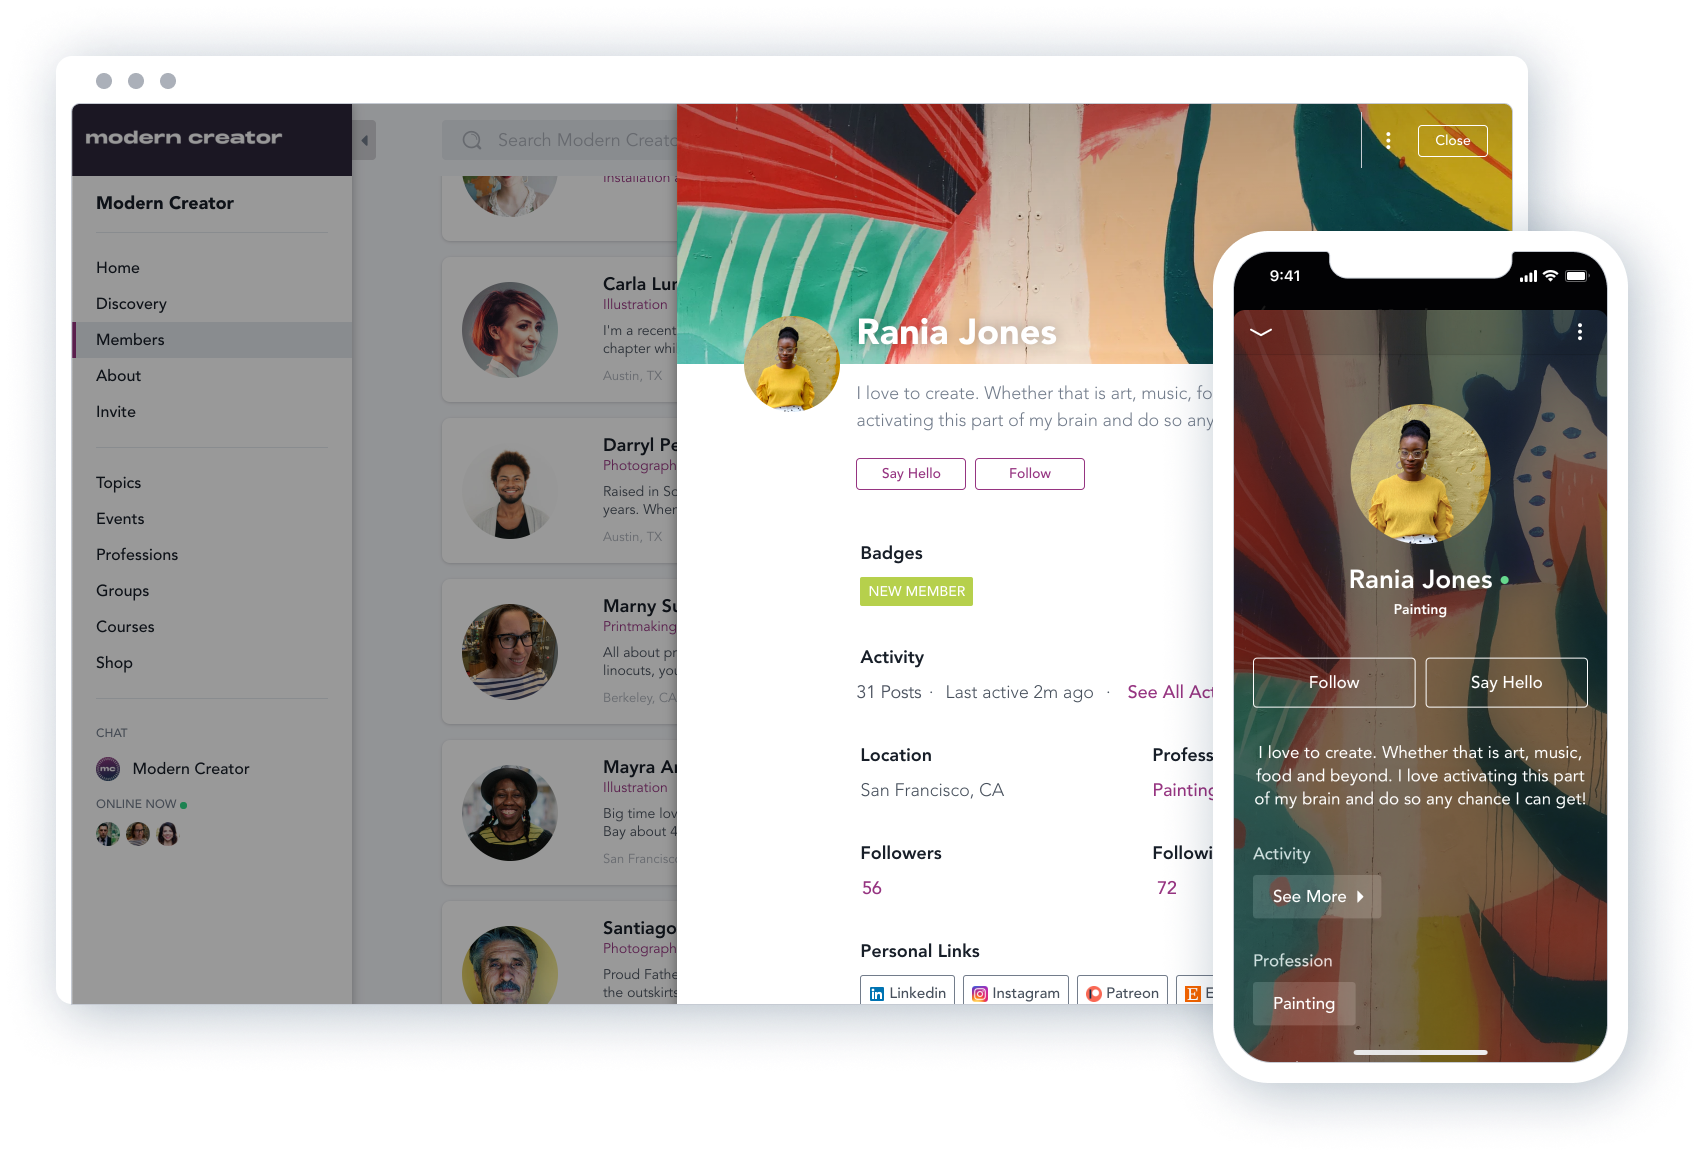 Mighty Networks Software - Members can create beautifully detailed profiles and can connect with each other based on relevant interests and categories. They can also direct message each other.